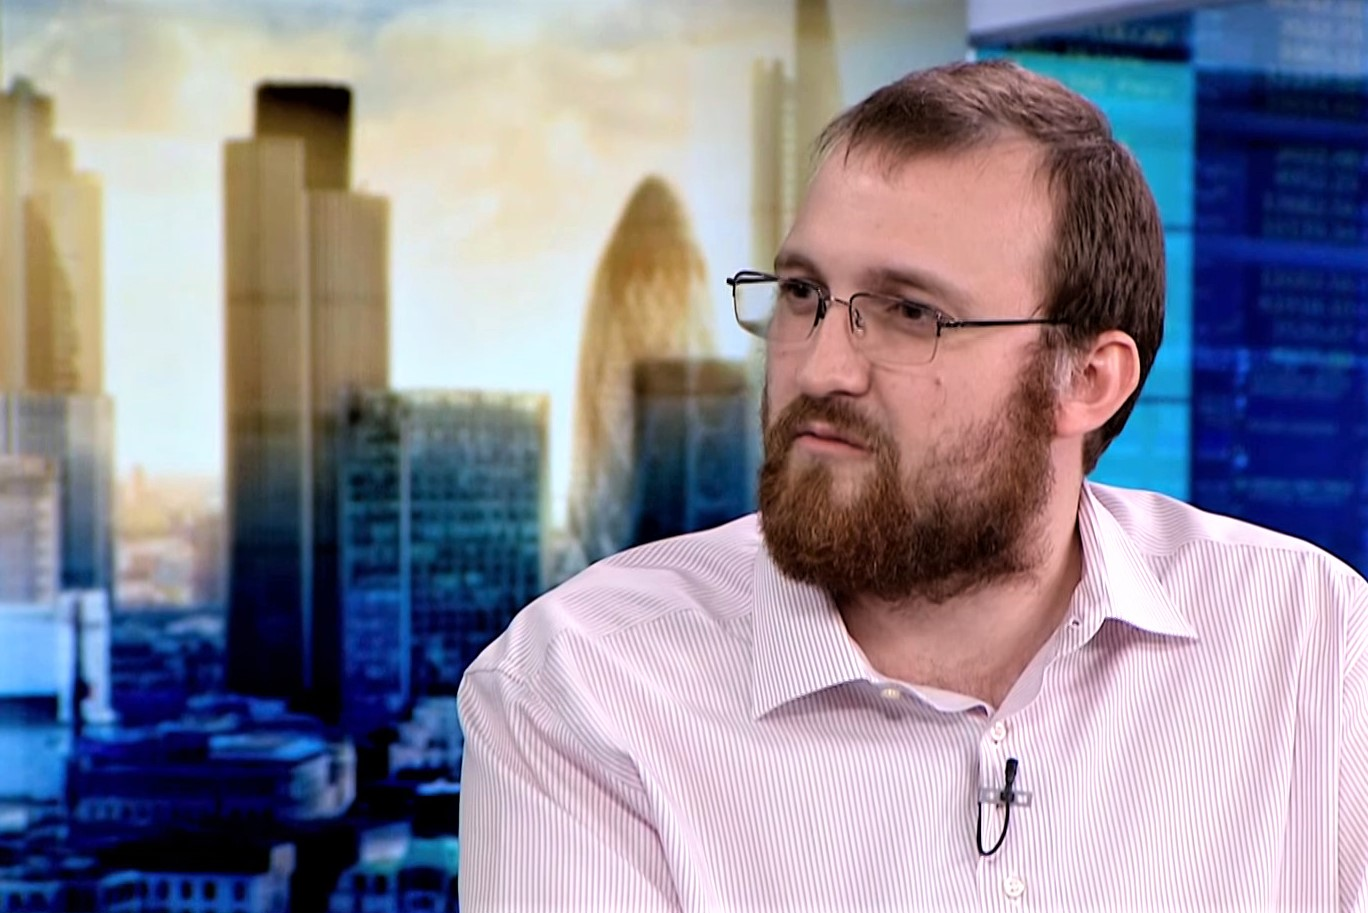 Charles Hoskinson on When Crypto Will be Ready for Institutional Money